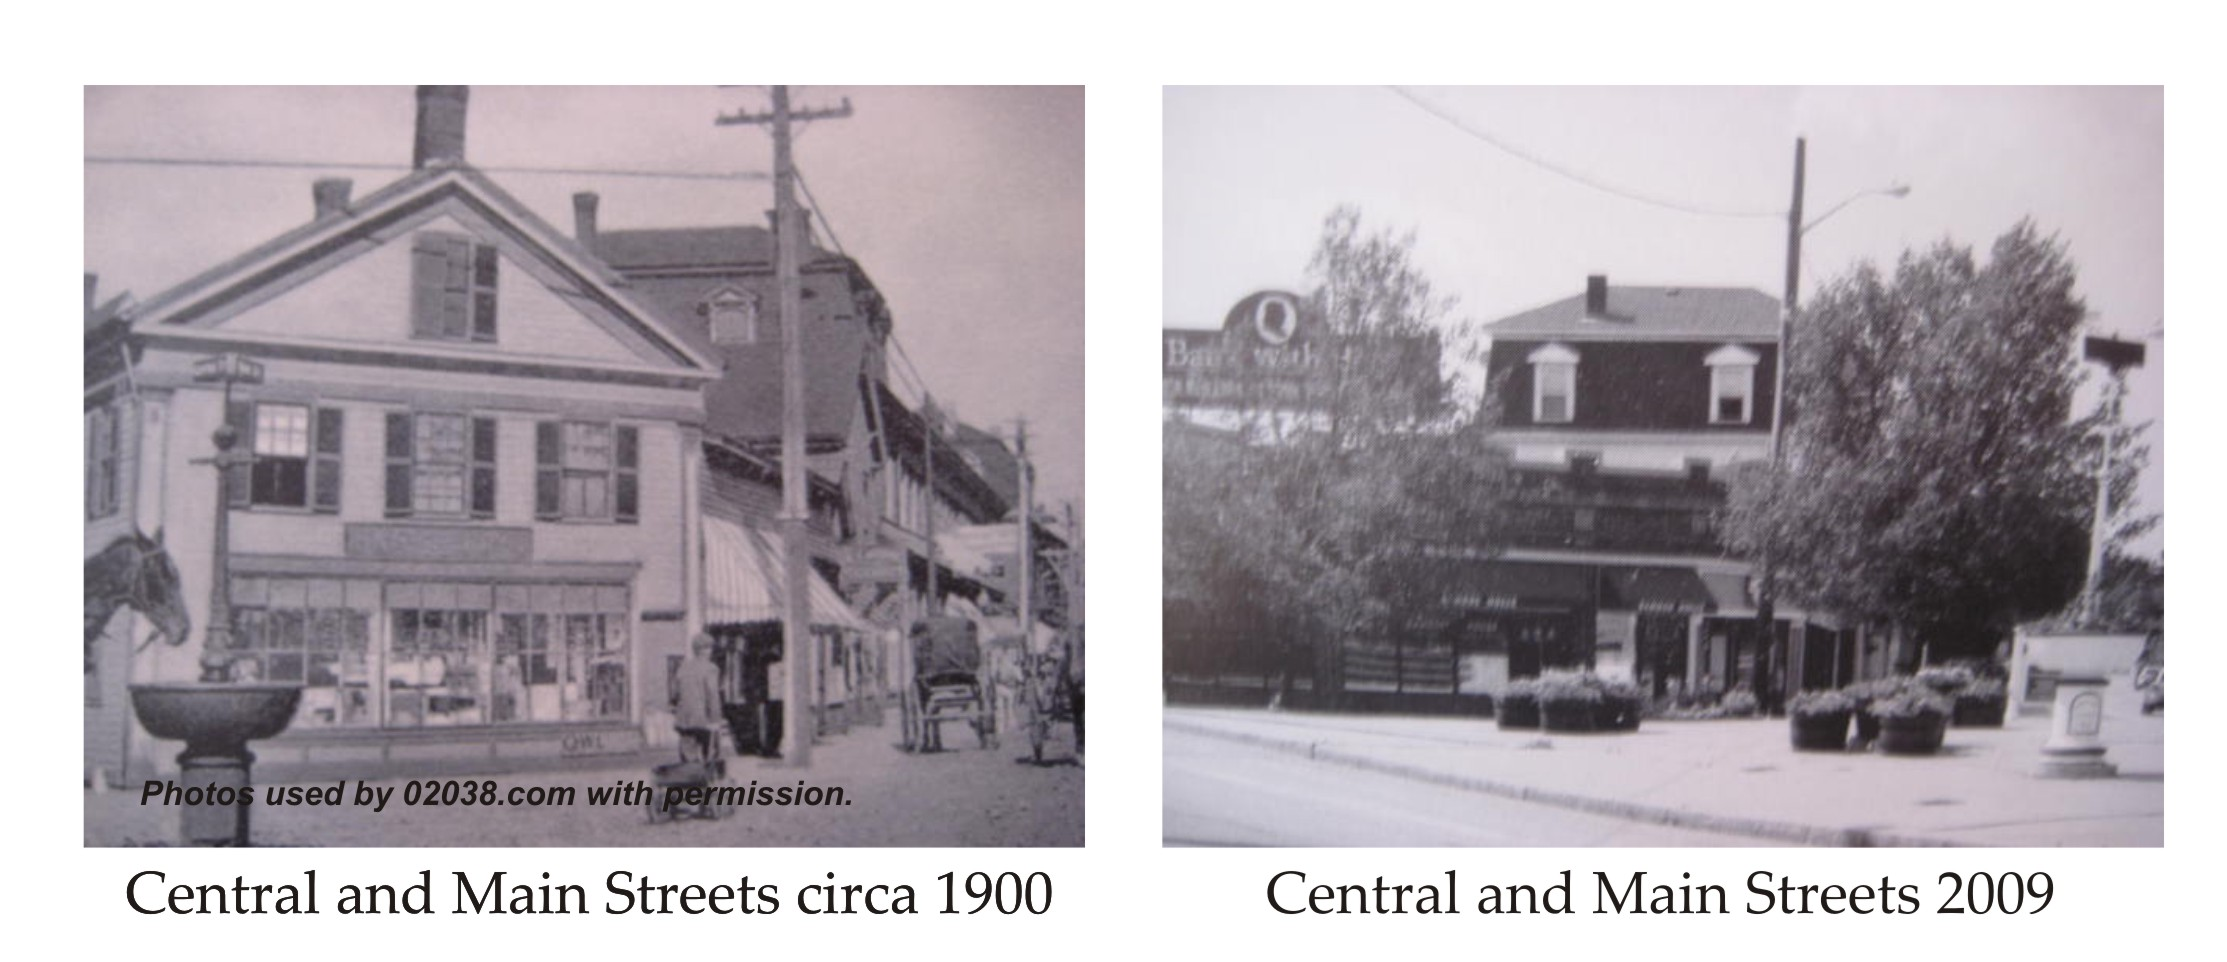 central-and-main-streets-franklin-ma.jpg